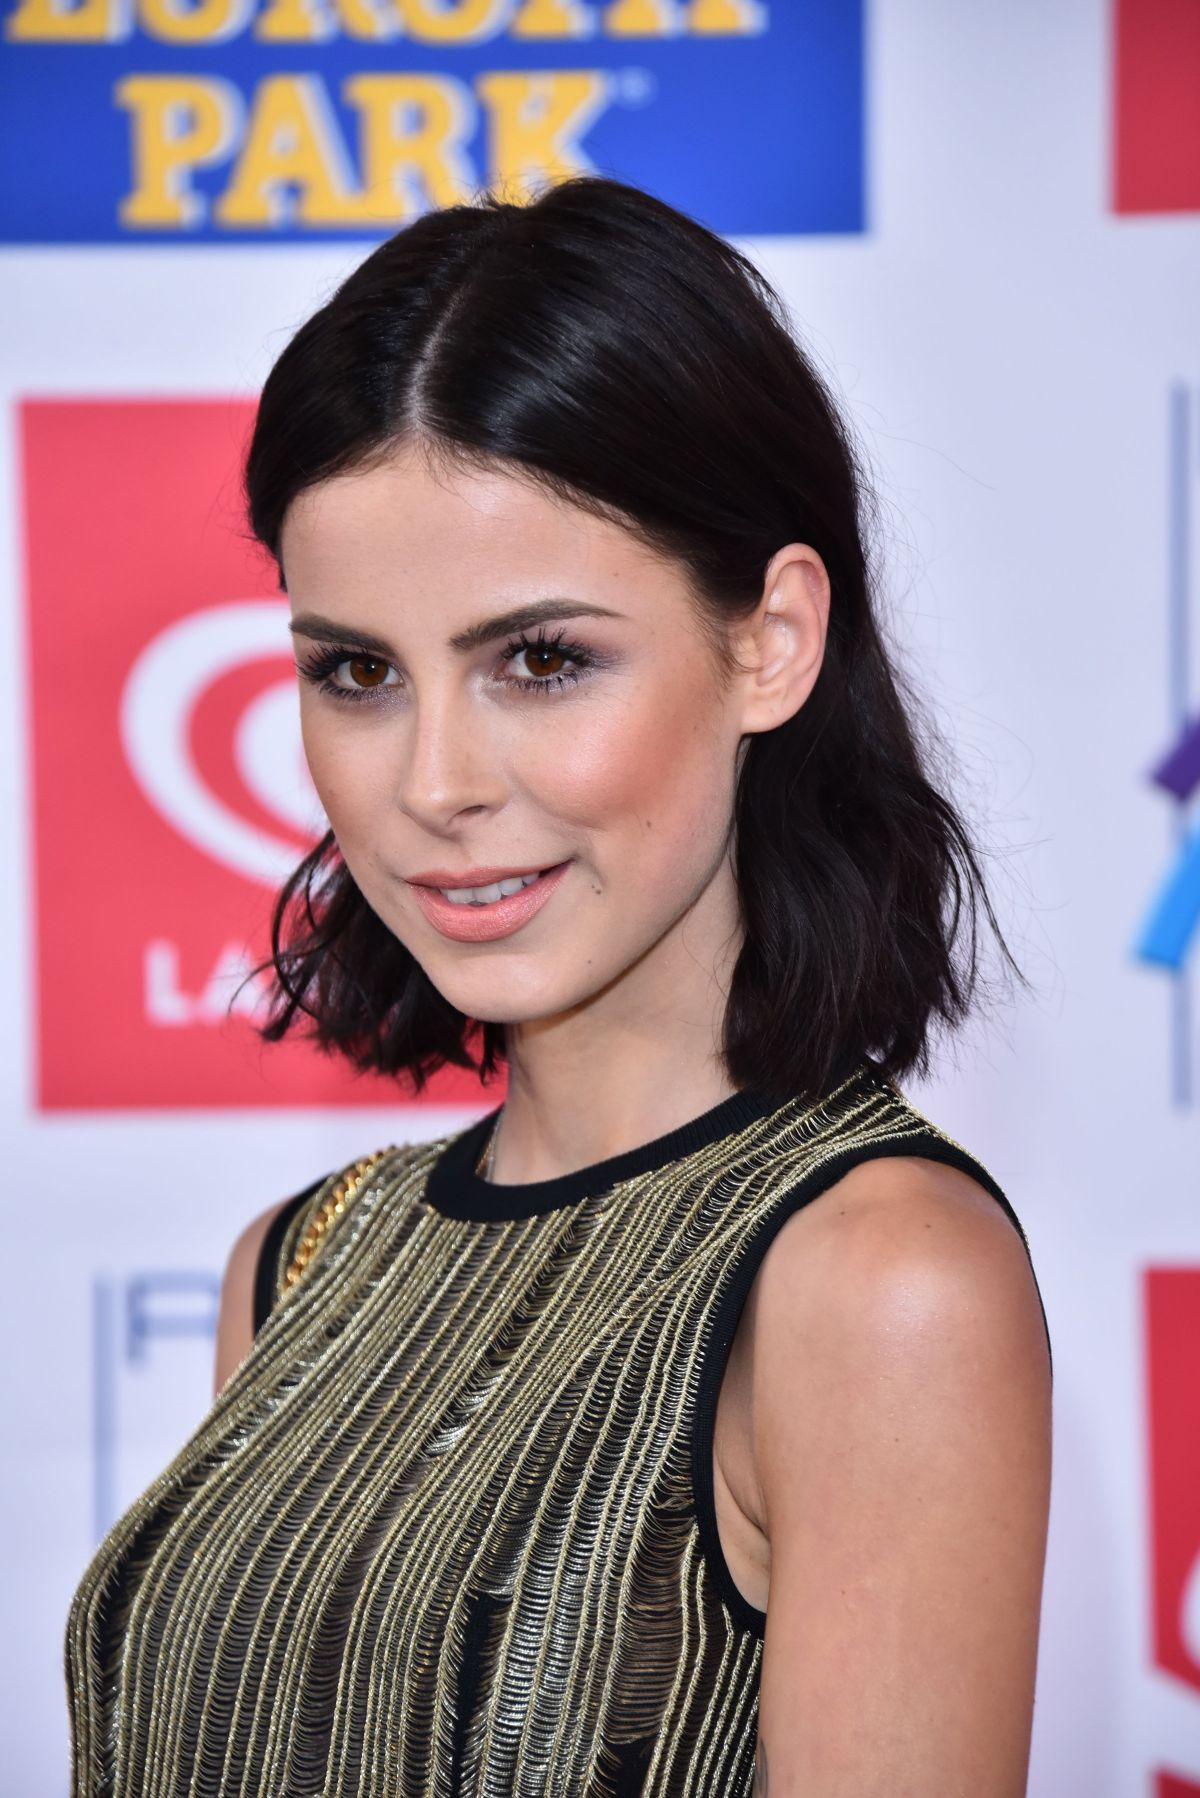 Lena Meyer-Landrut nudes (82 foto), video Topless, Snapchat, cleavage 2018